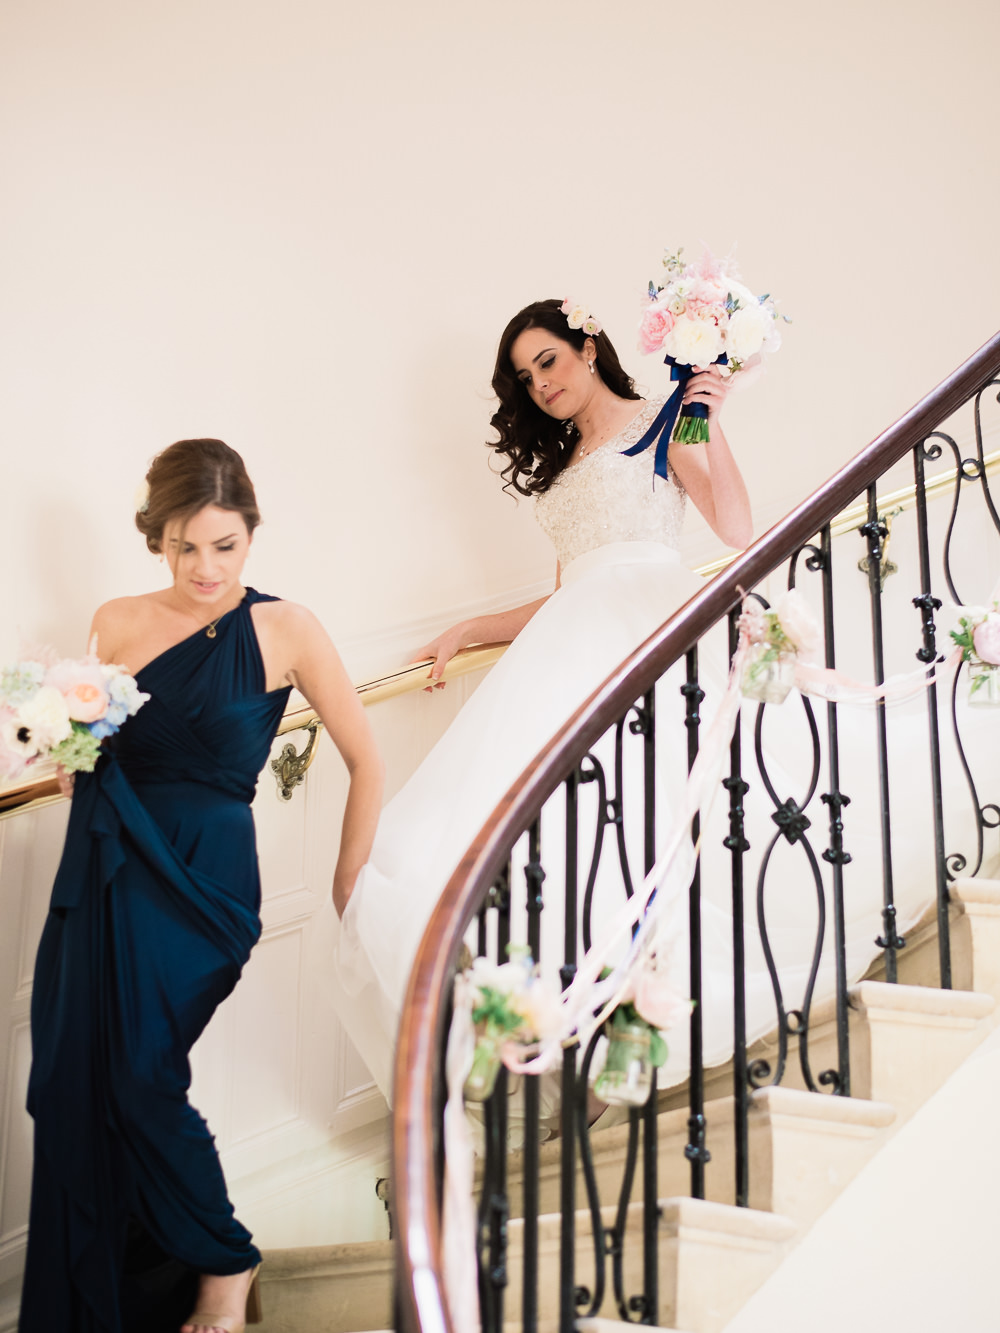 Allure bridal gown for a classic spring wedding at eastington park a hrefhttpjohnbarwoodphotography john barwood photography allure bridal gown ombrellifo Image collections